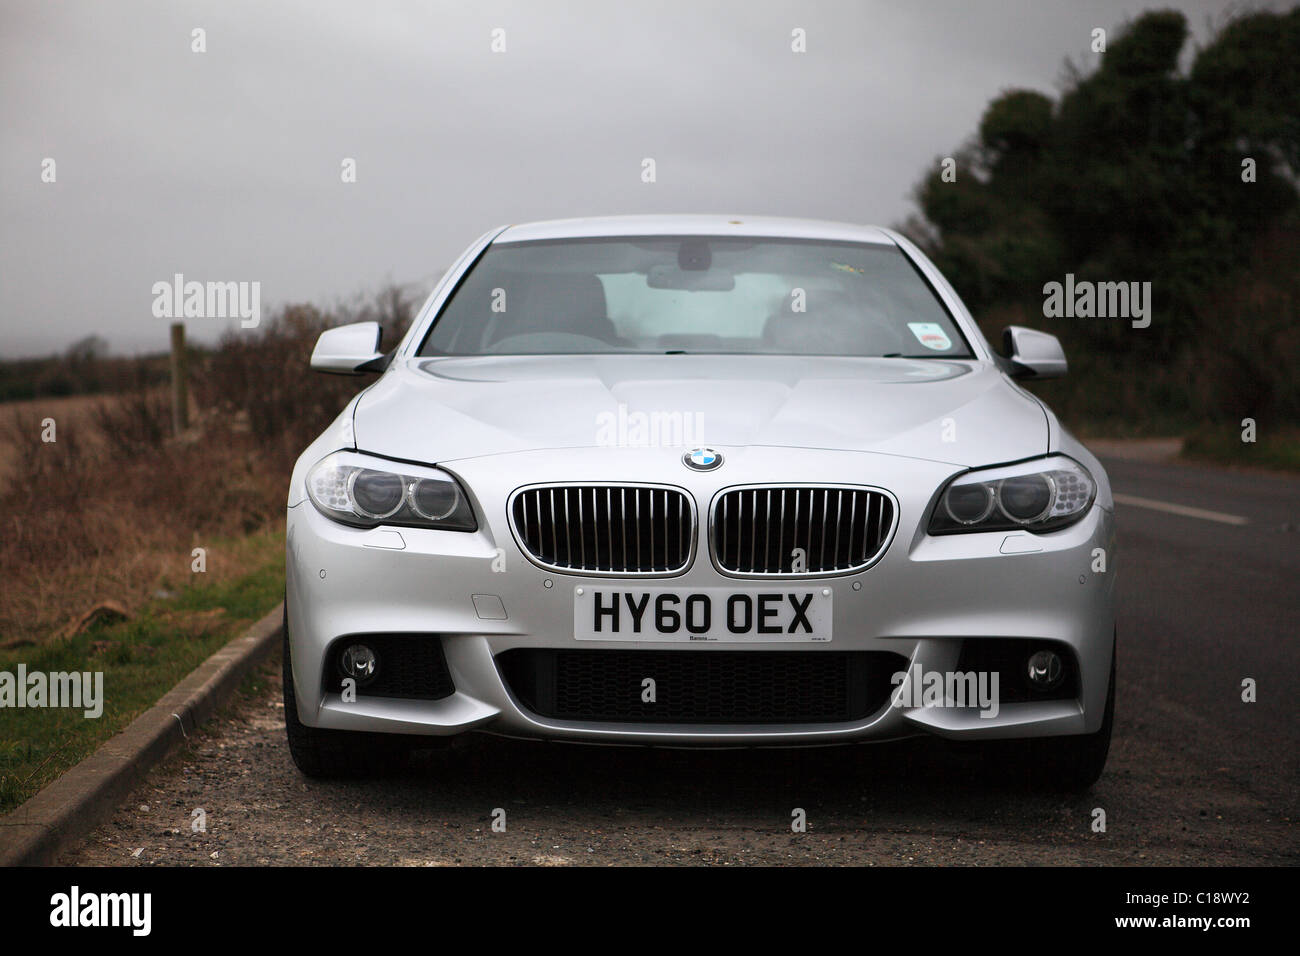 Silver BMW 5-Series Saloon Motor Car, F10 version introduced in ...